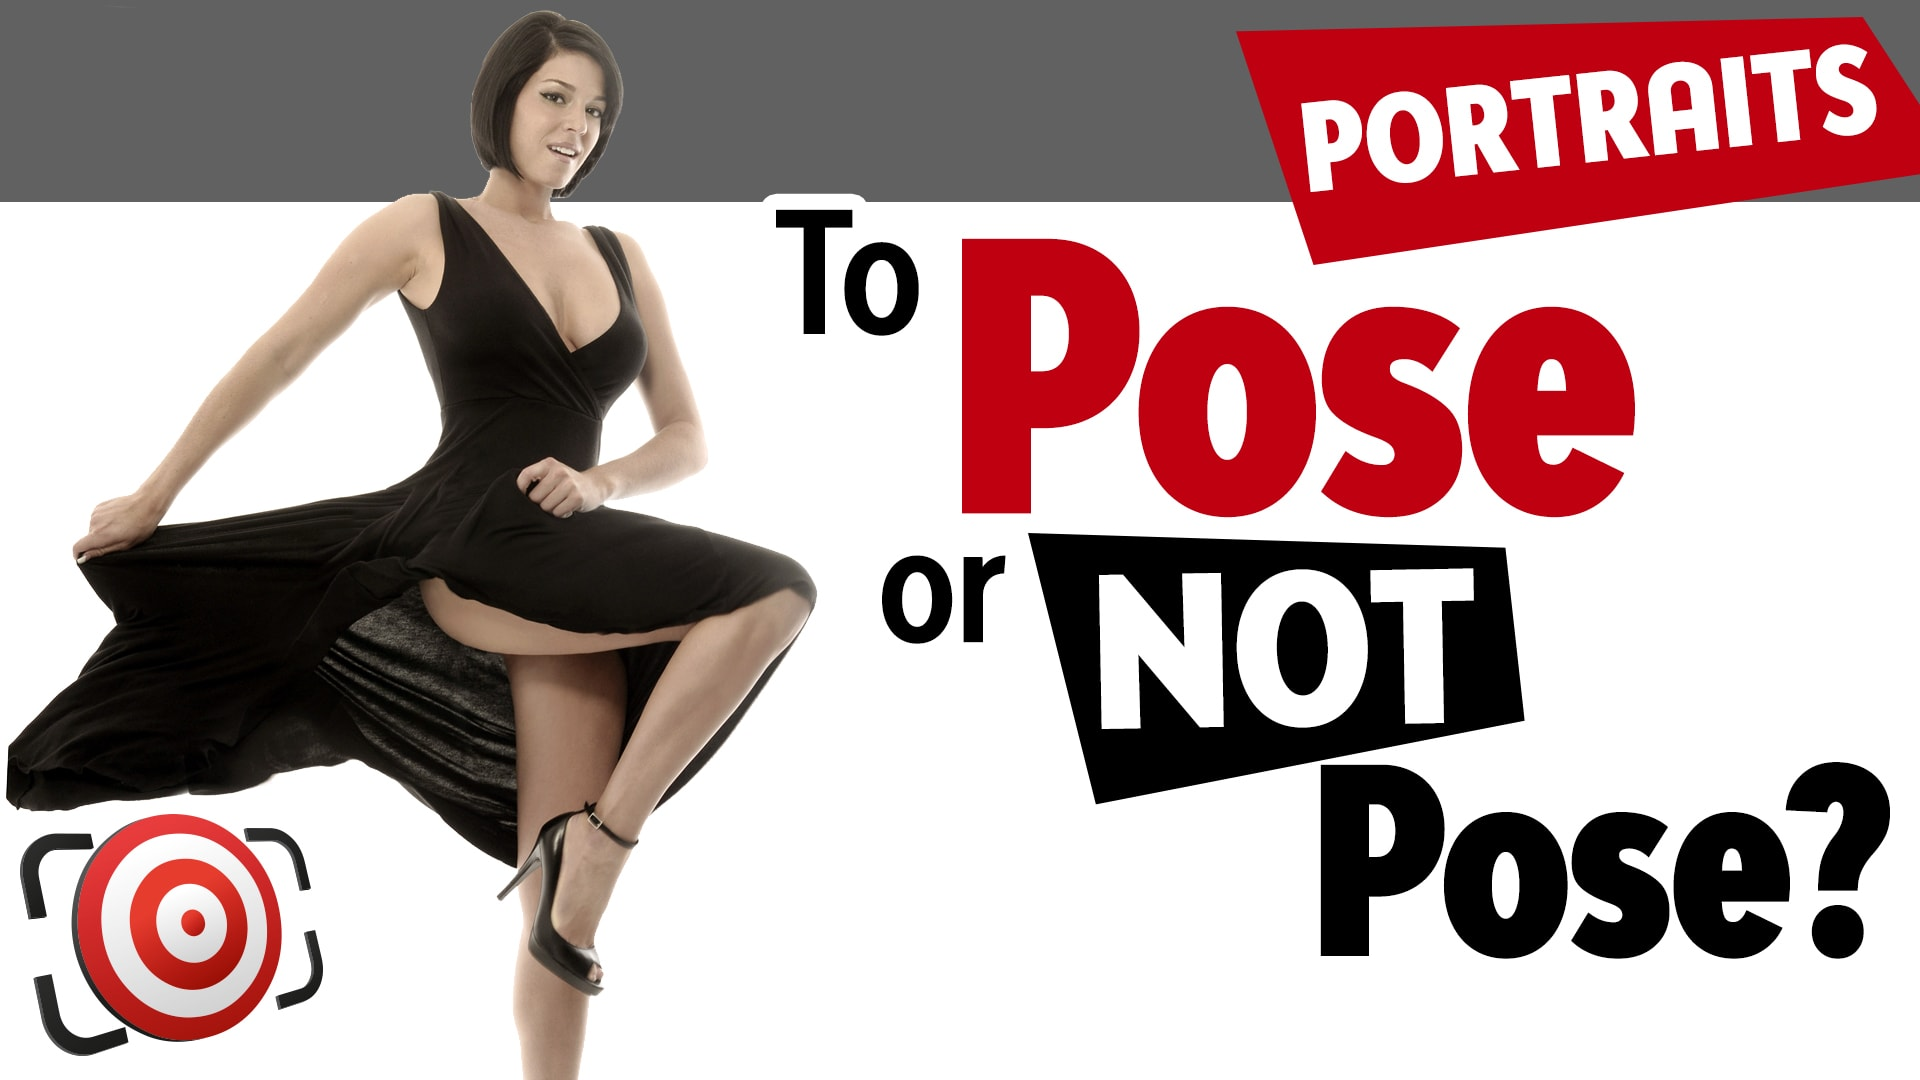 To pose or not to pose cover image